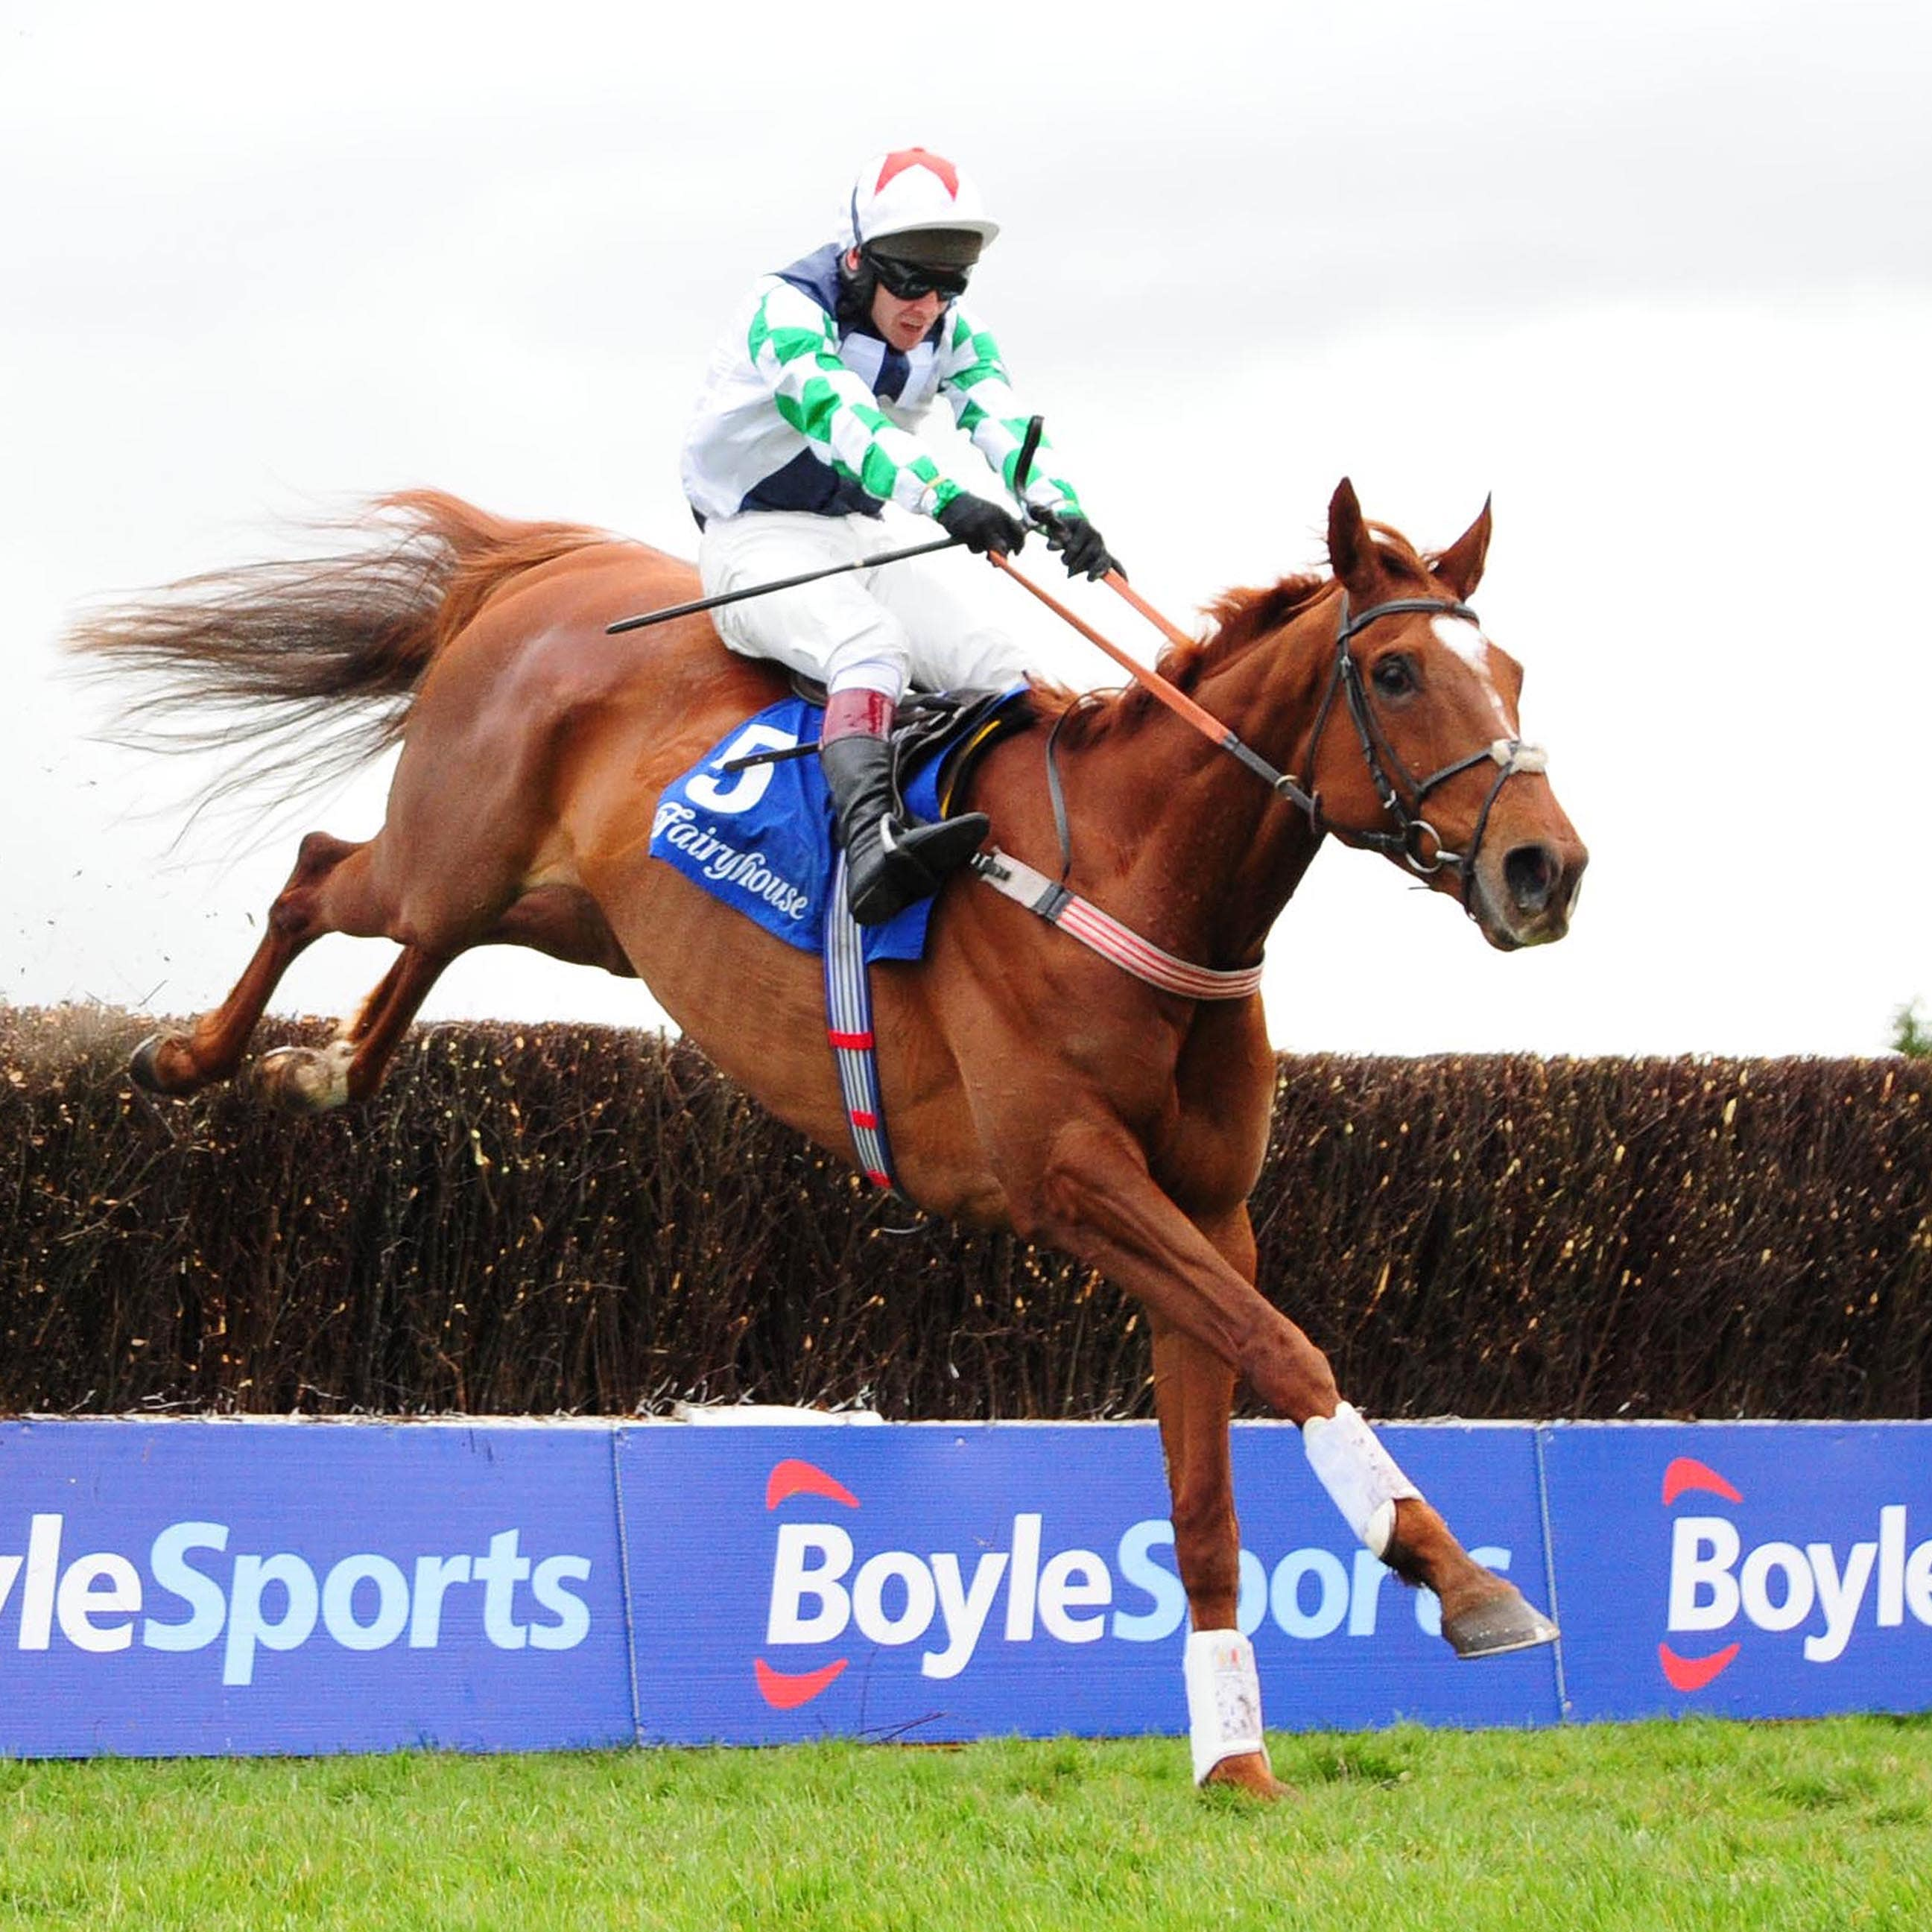 Top Gamble will be ridden by his trainer Kerry Lee in a charity race at Hereford